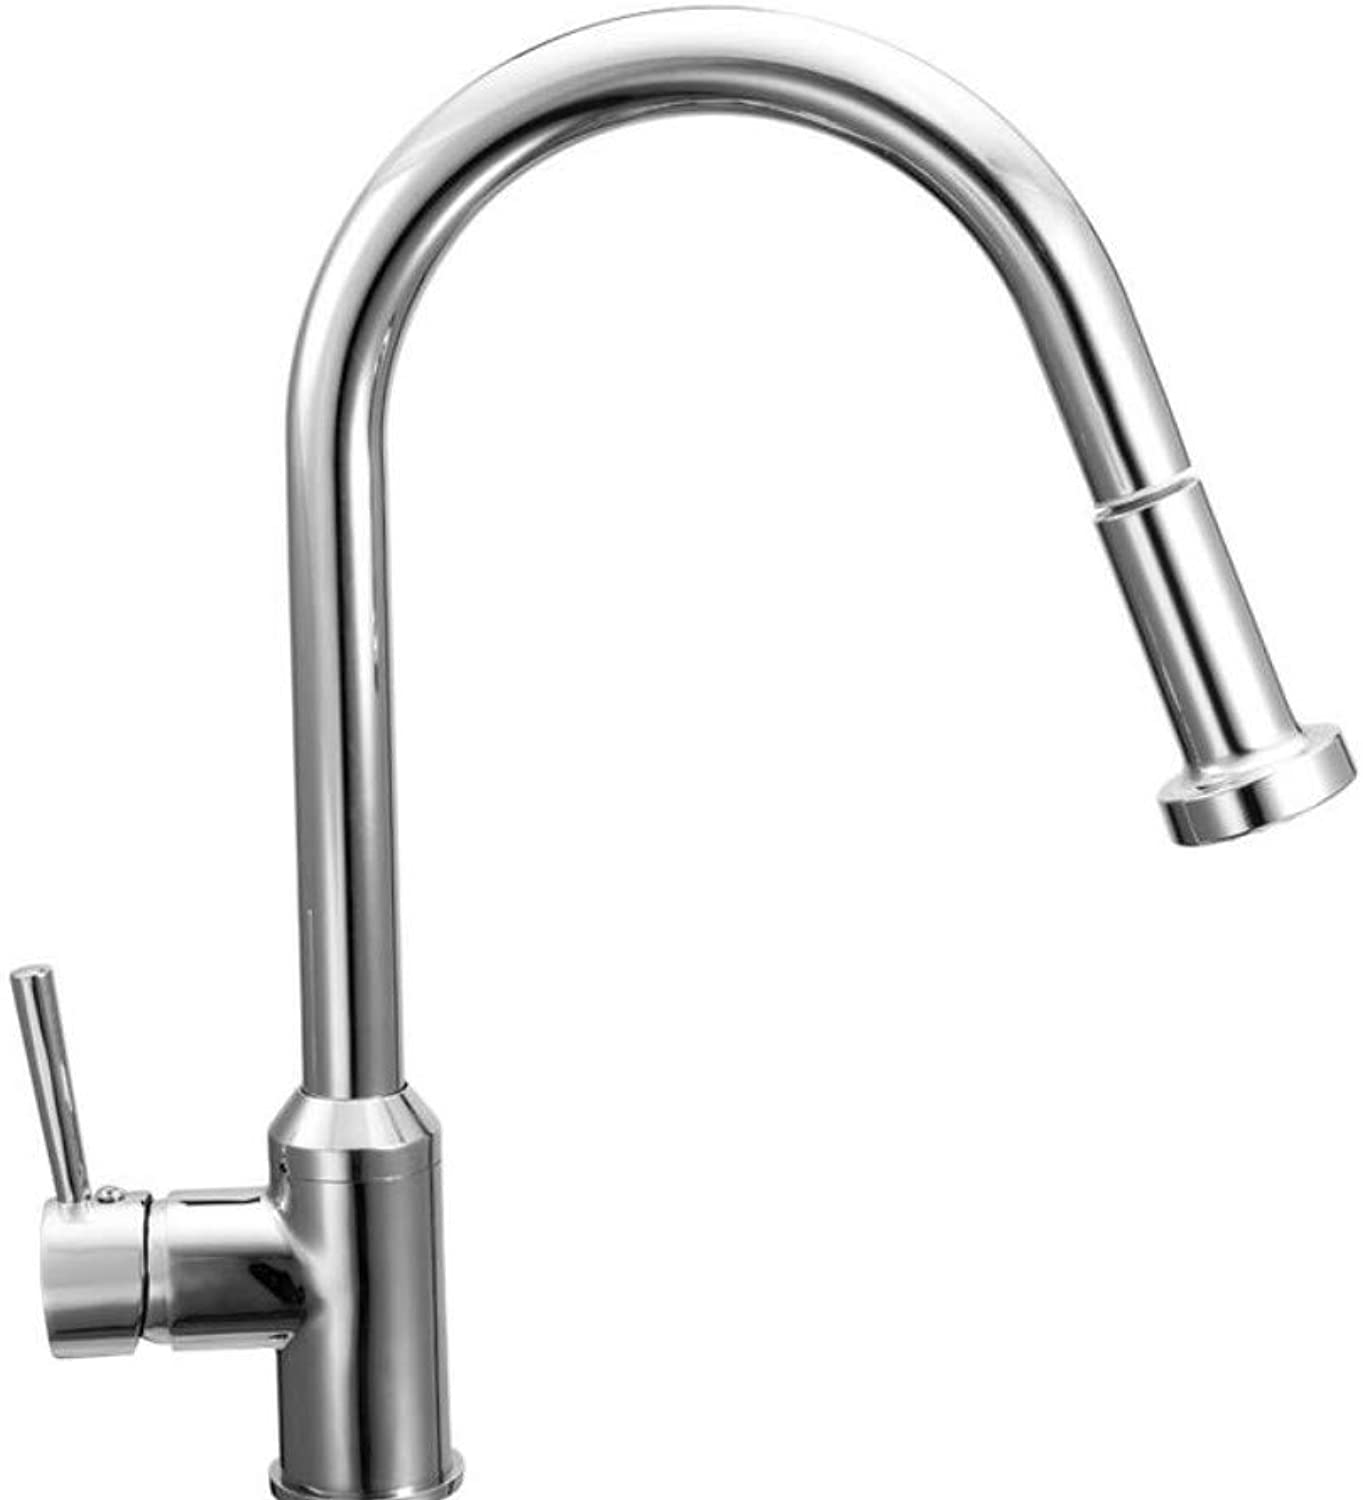 Wasserhahn Waschbecken Single Linked Swivel Design Pull Out Kitchen Sink Faucet Extension-Type Rotatable Stainless Steel Water Taps